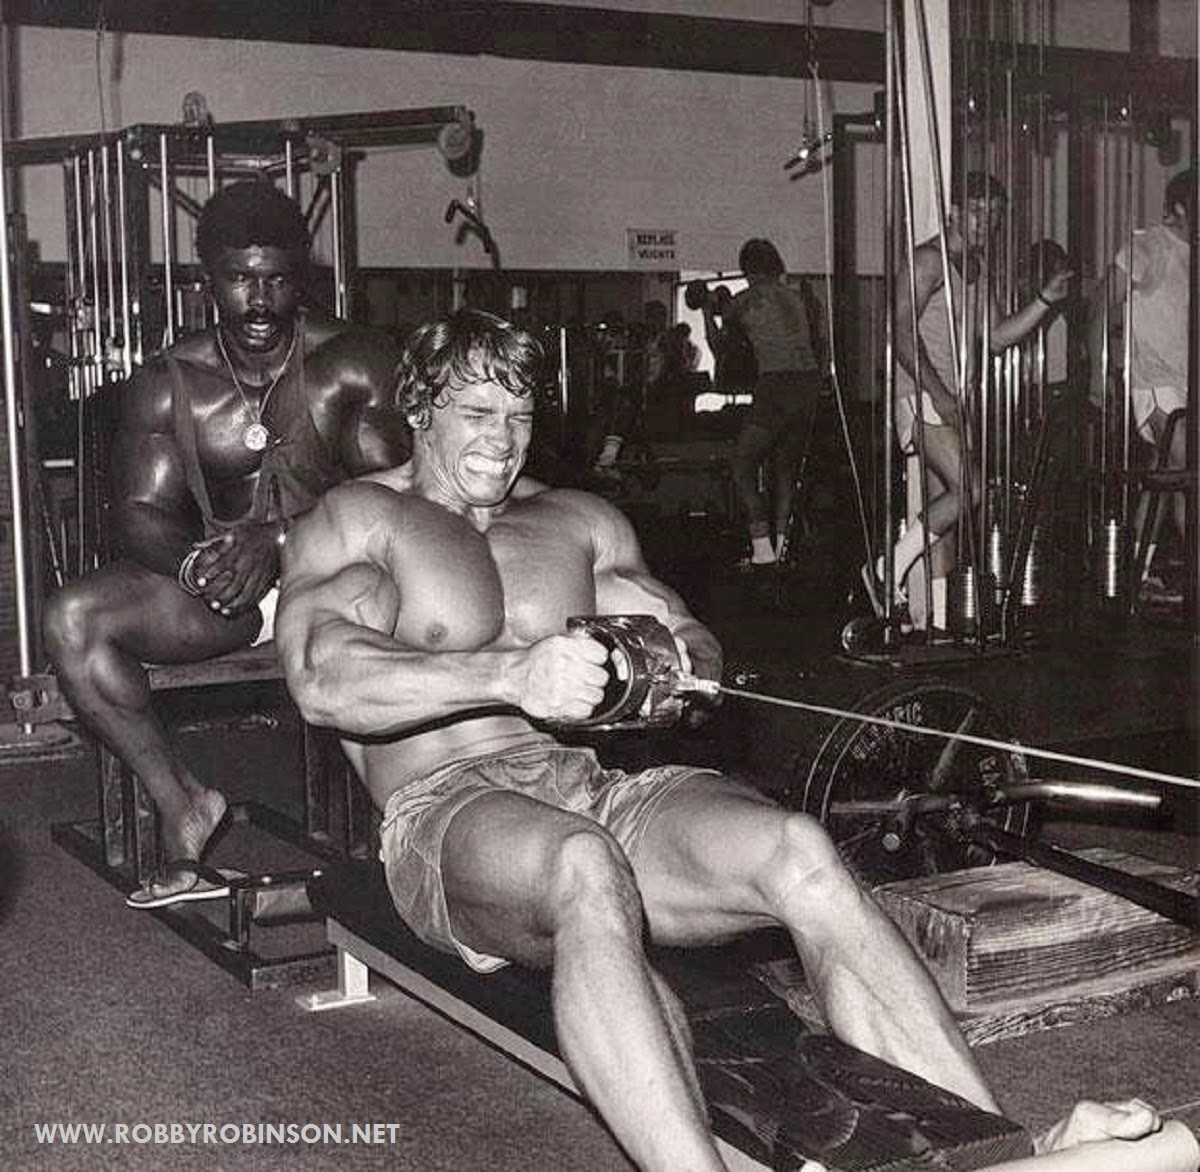 Robby Robinson and Arnold Schwarzenegger training during  filming of bodybuilding cult movie Pumping Iron at Golds's in 1975 ● www.robbyrobinson.net/dvd_built.php ●